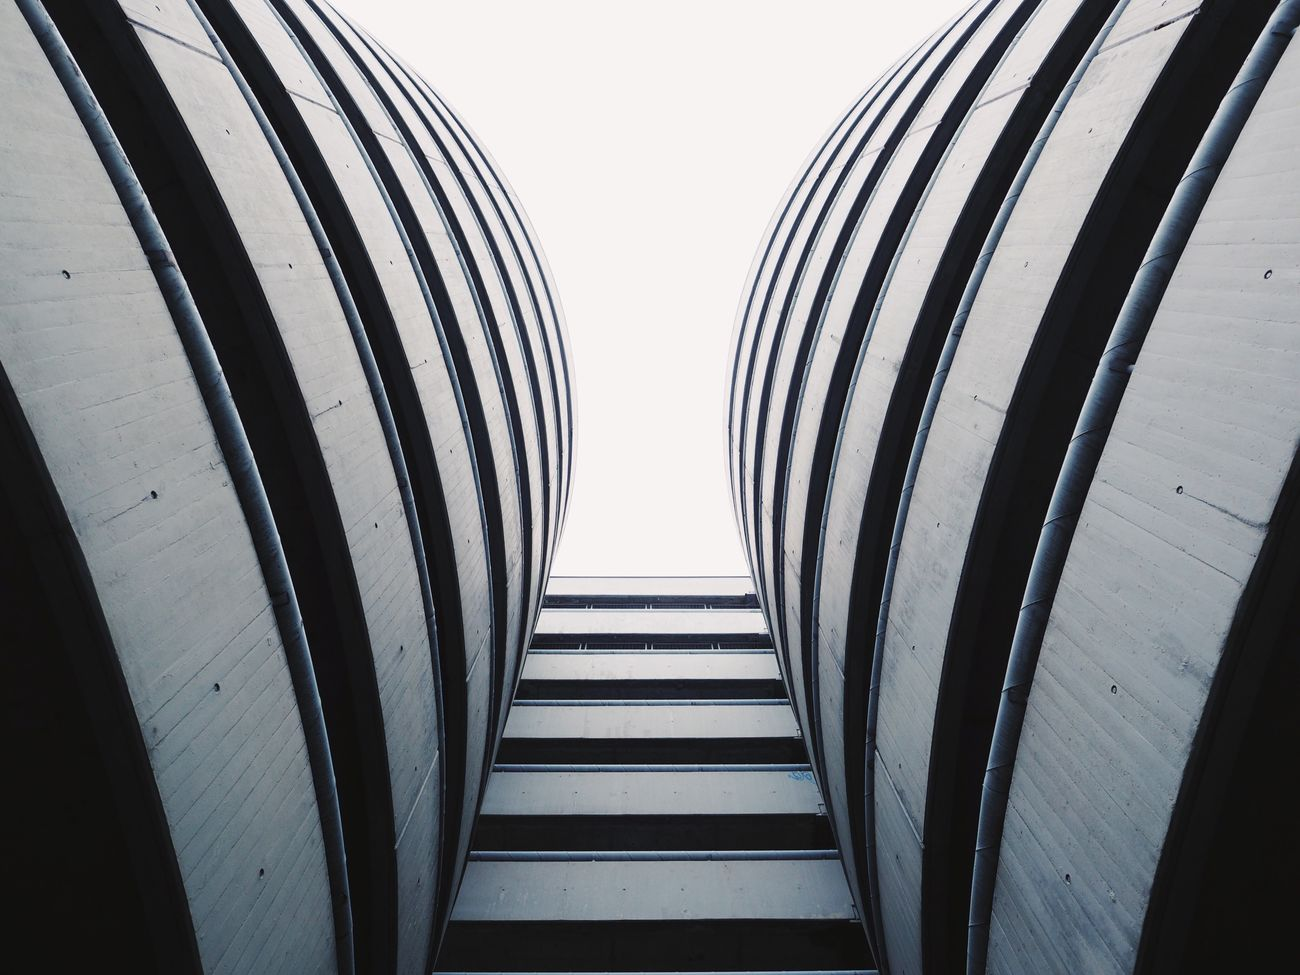 Repetition Architecture Built Structure Close-up Parking From My Point Of View View From Below Looking Up Architecture_collection Minimalism Minimalobsession Geometric Shape Urban Geometry at Basel, Switzerland Black And White